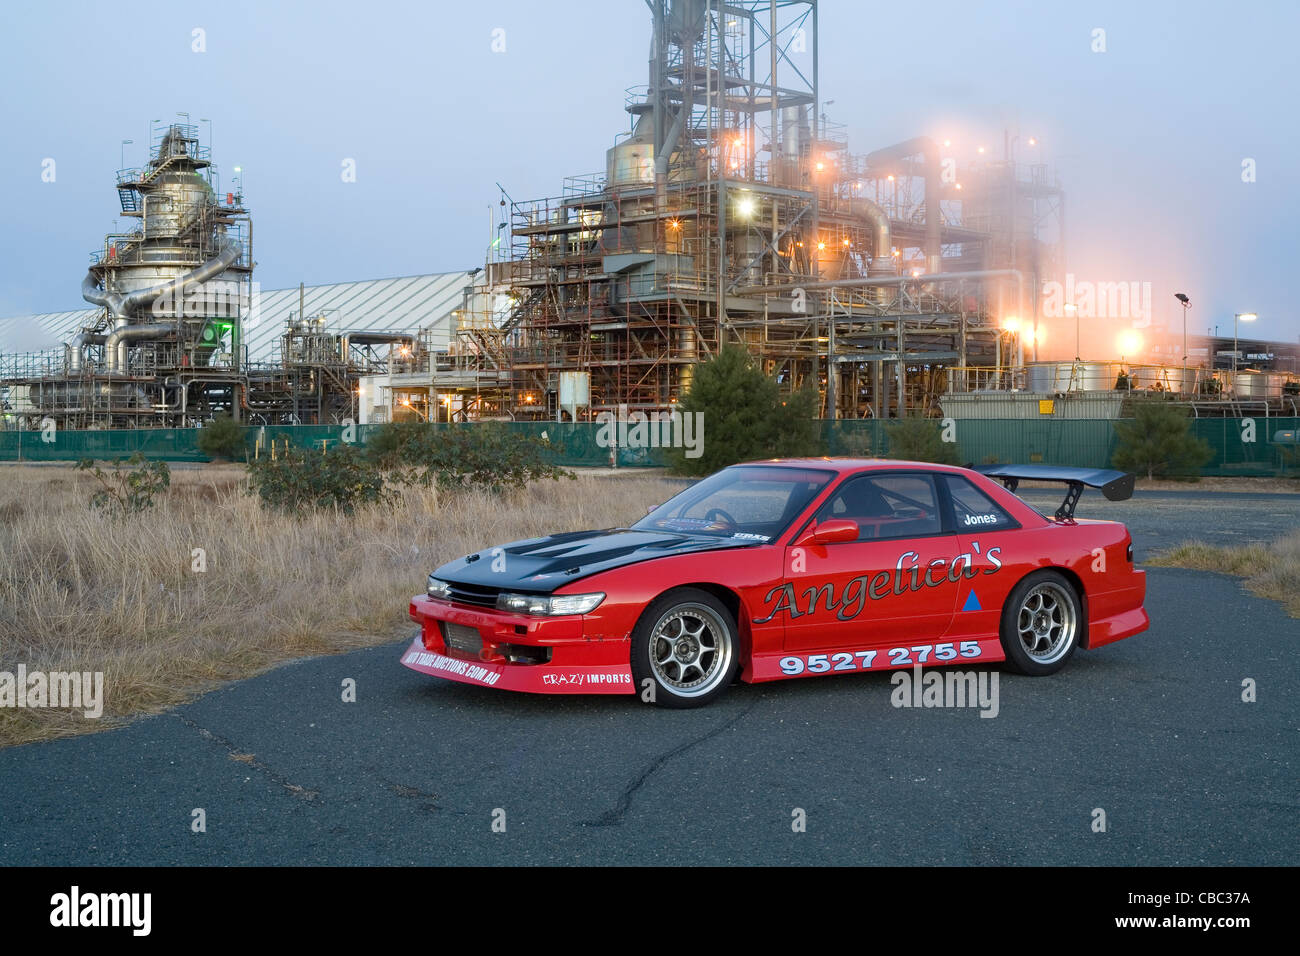 Nissan 180SX S13 Silvia Drift Motorsport Car Sitting Posed In Front An  Industrial Refinery   Stock